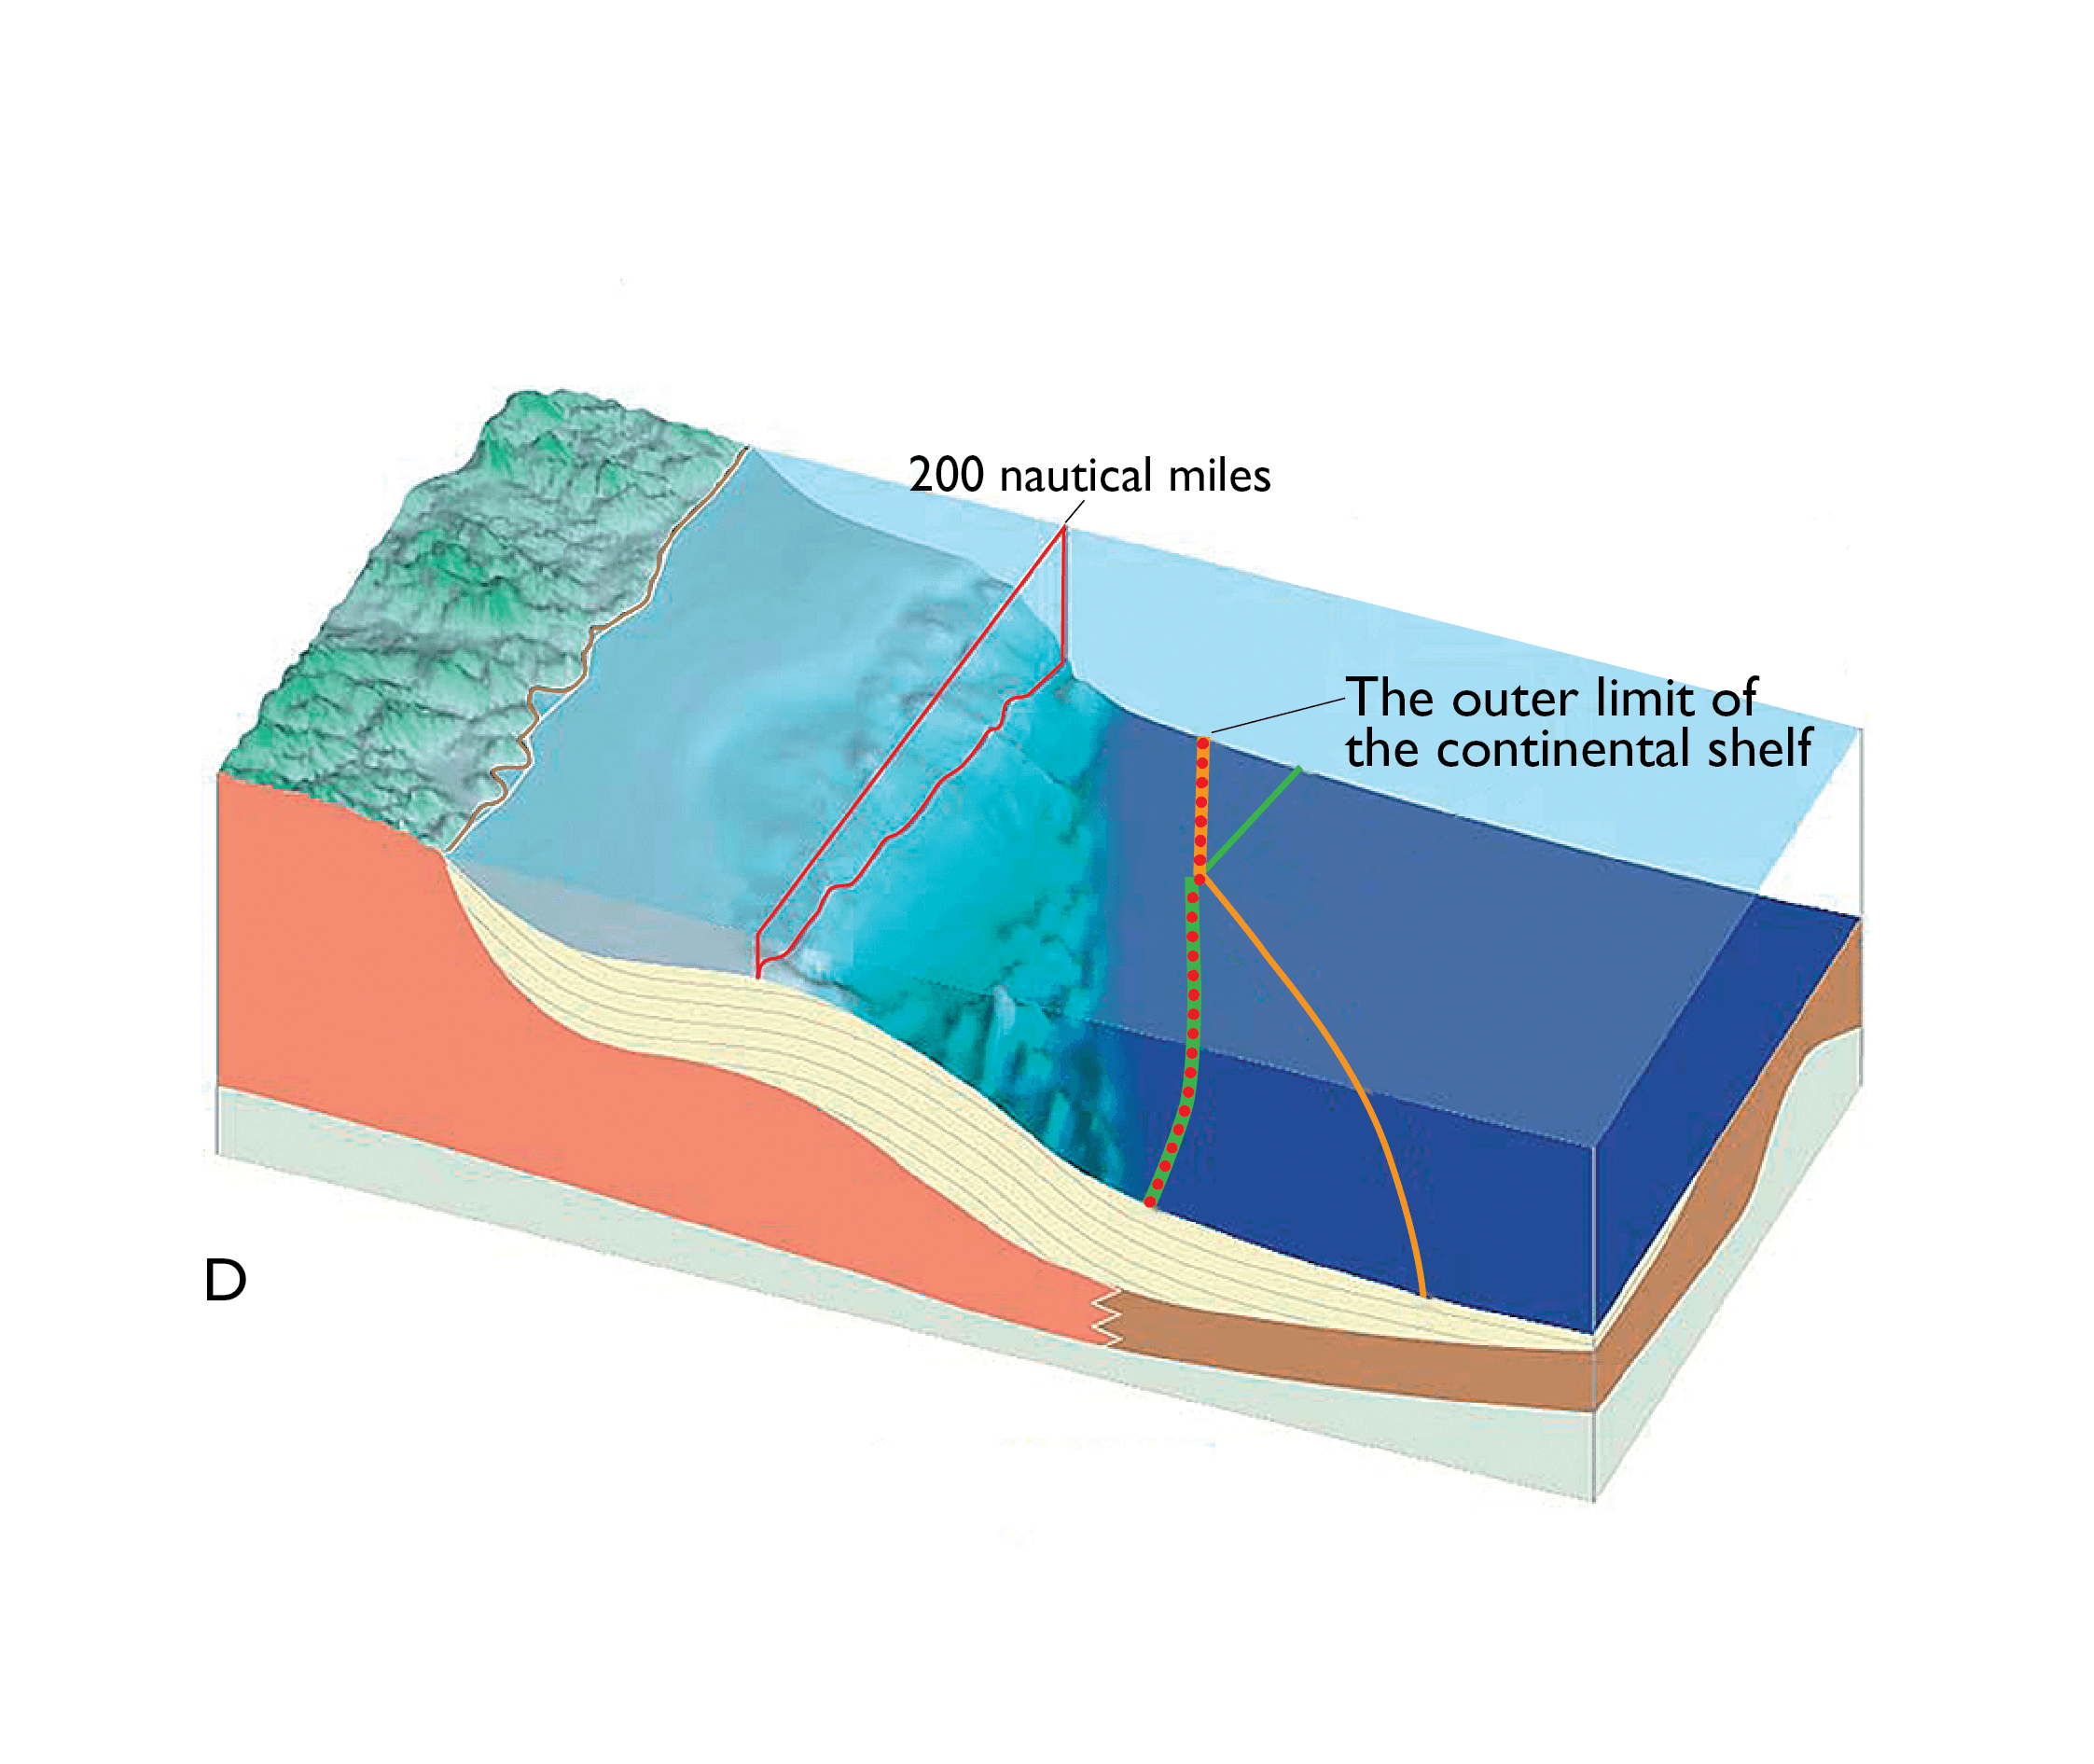 Figure D shows how the formula and constraint lines are combined in order to find the final outer limit for the continental shelf